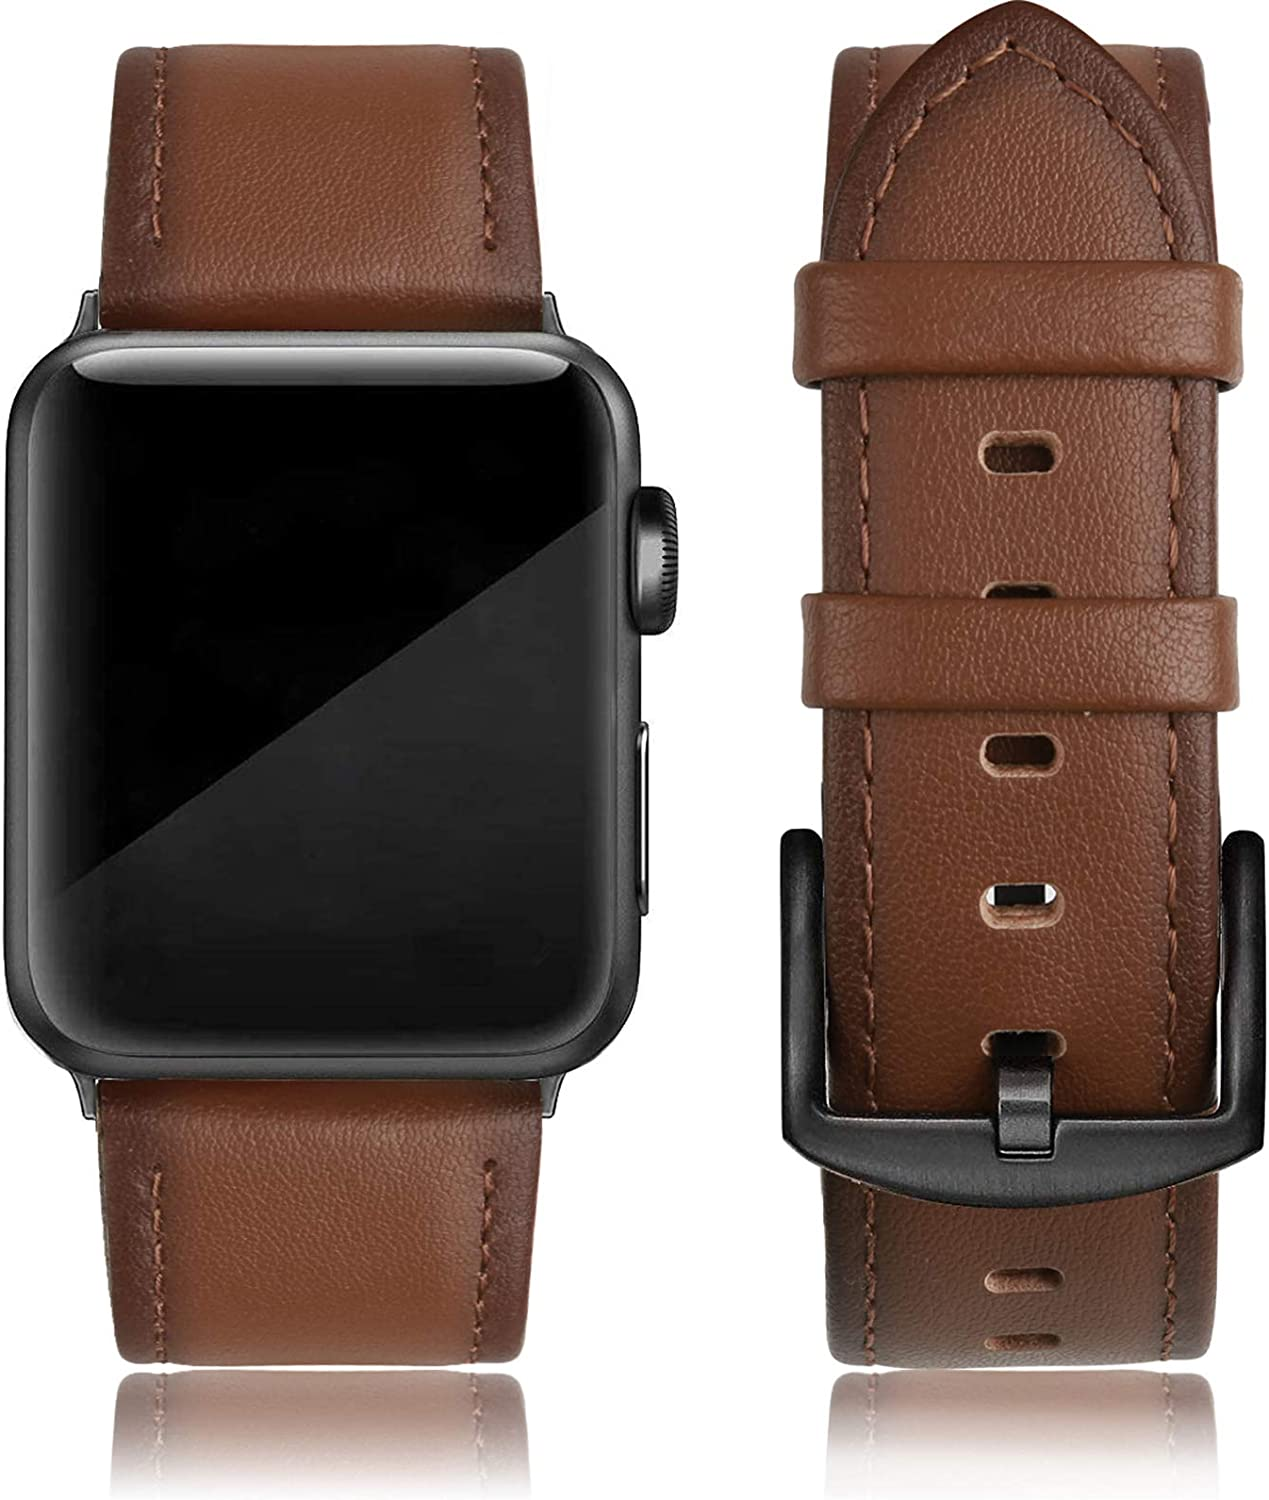 EDIMENS Leather Bands Compatible with Apple Watch 42mm 44mm Band Men Women, Vintage Genuine Leather Wristband Replacement Band Compatible for Apple Watch iwatch Series 6 5 4 3 2 1, SE Sports & Edition